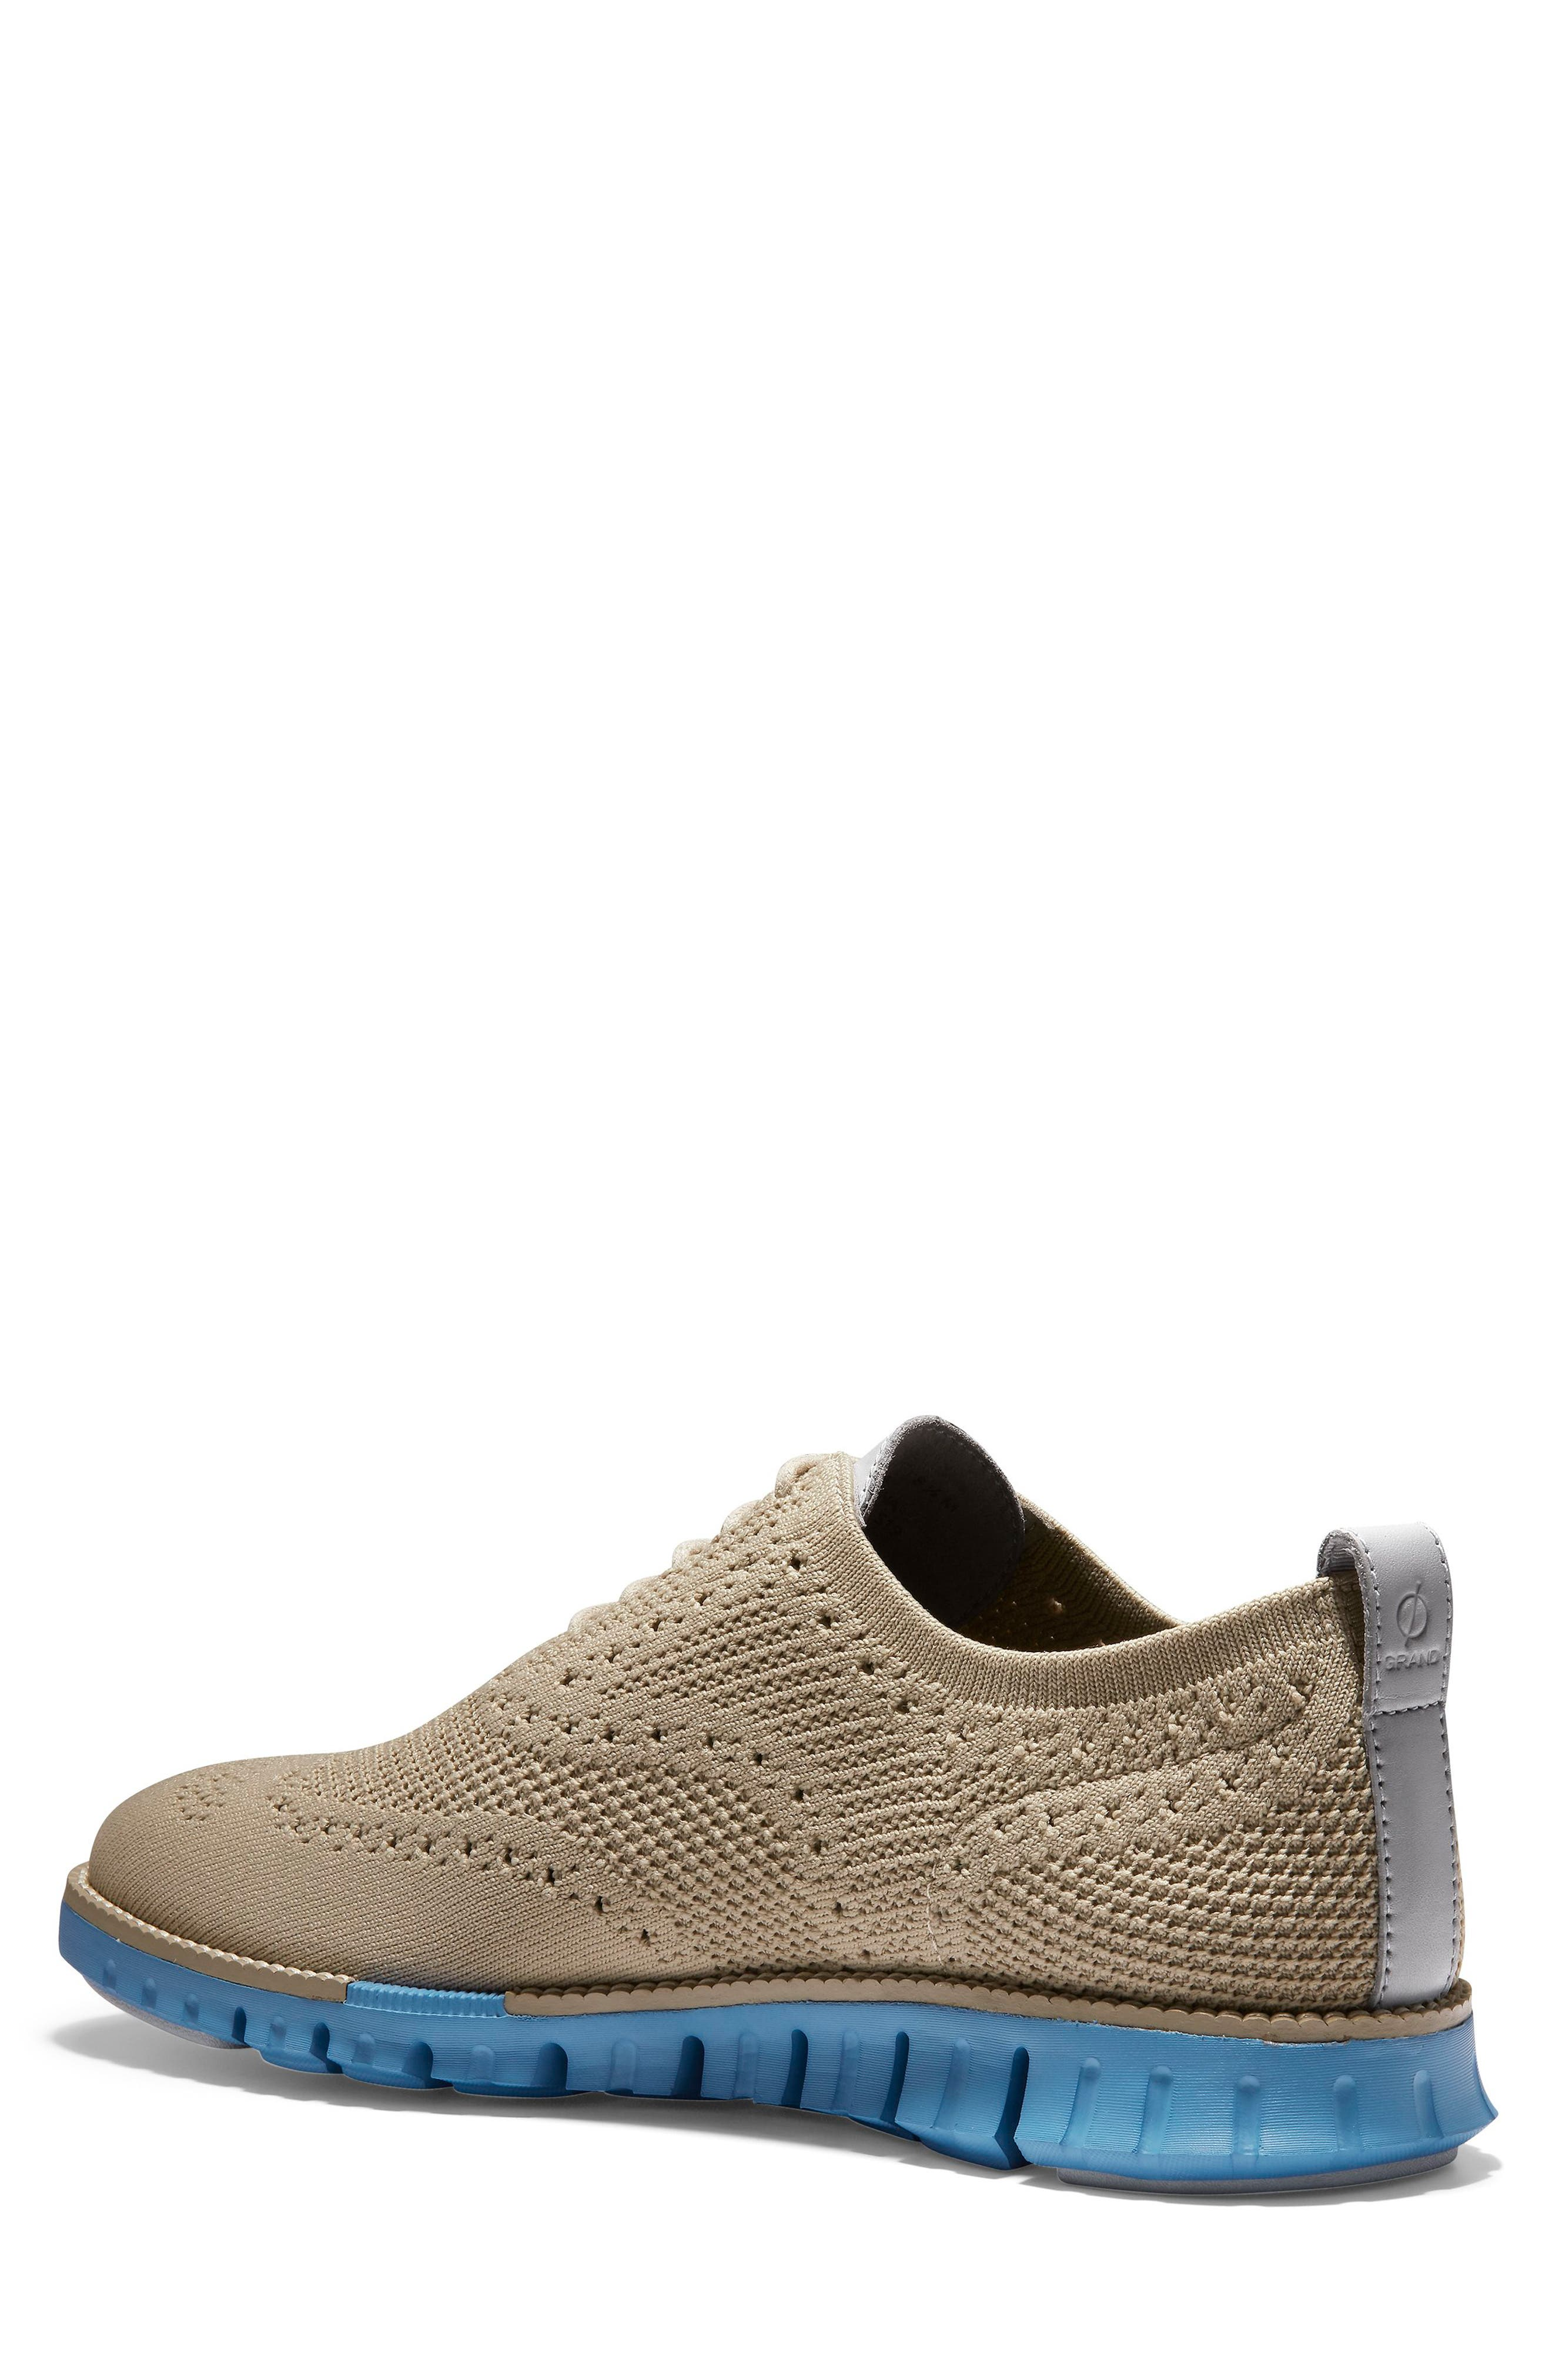 ,                             ZeroGrand Stitch-lite Wingtip Oxford,                             Alternate thumbnail 2, color,                             HAWTHORN/ PACIFIC